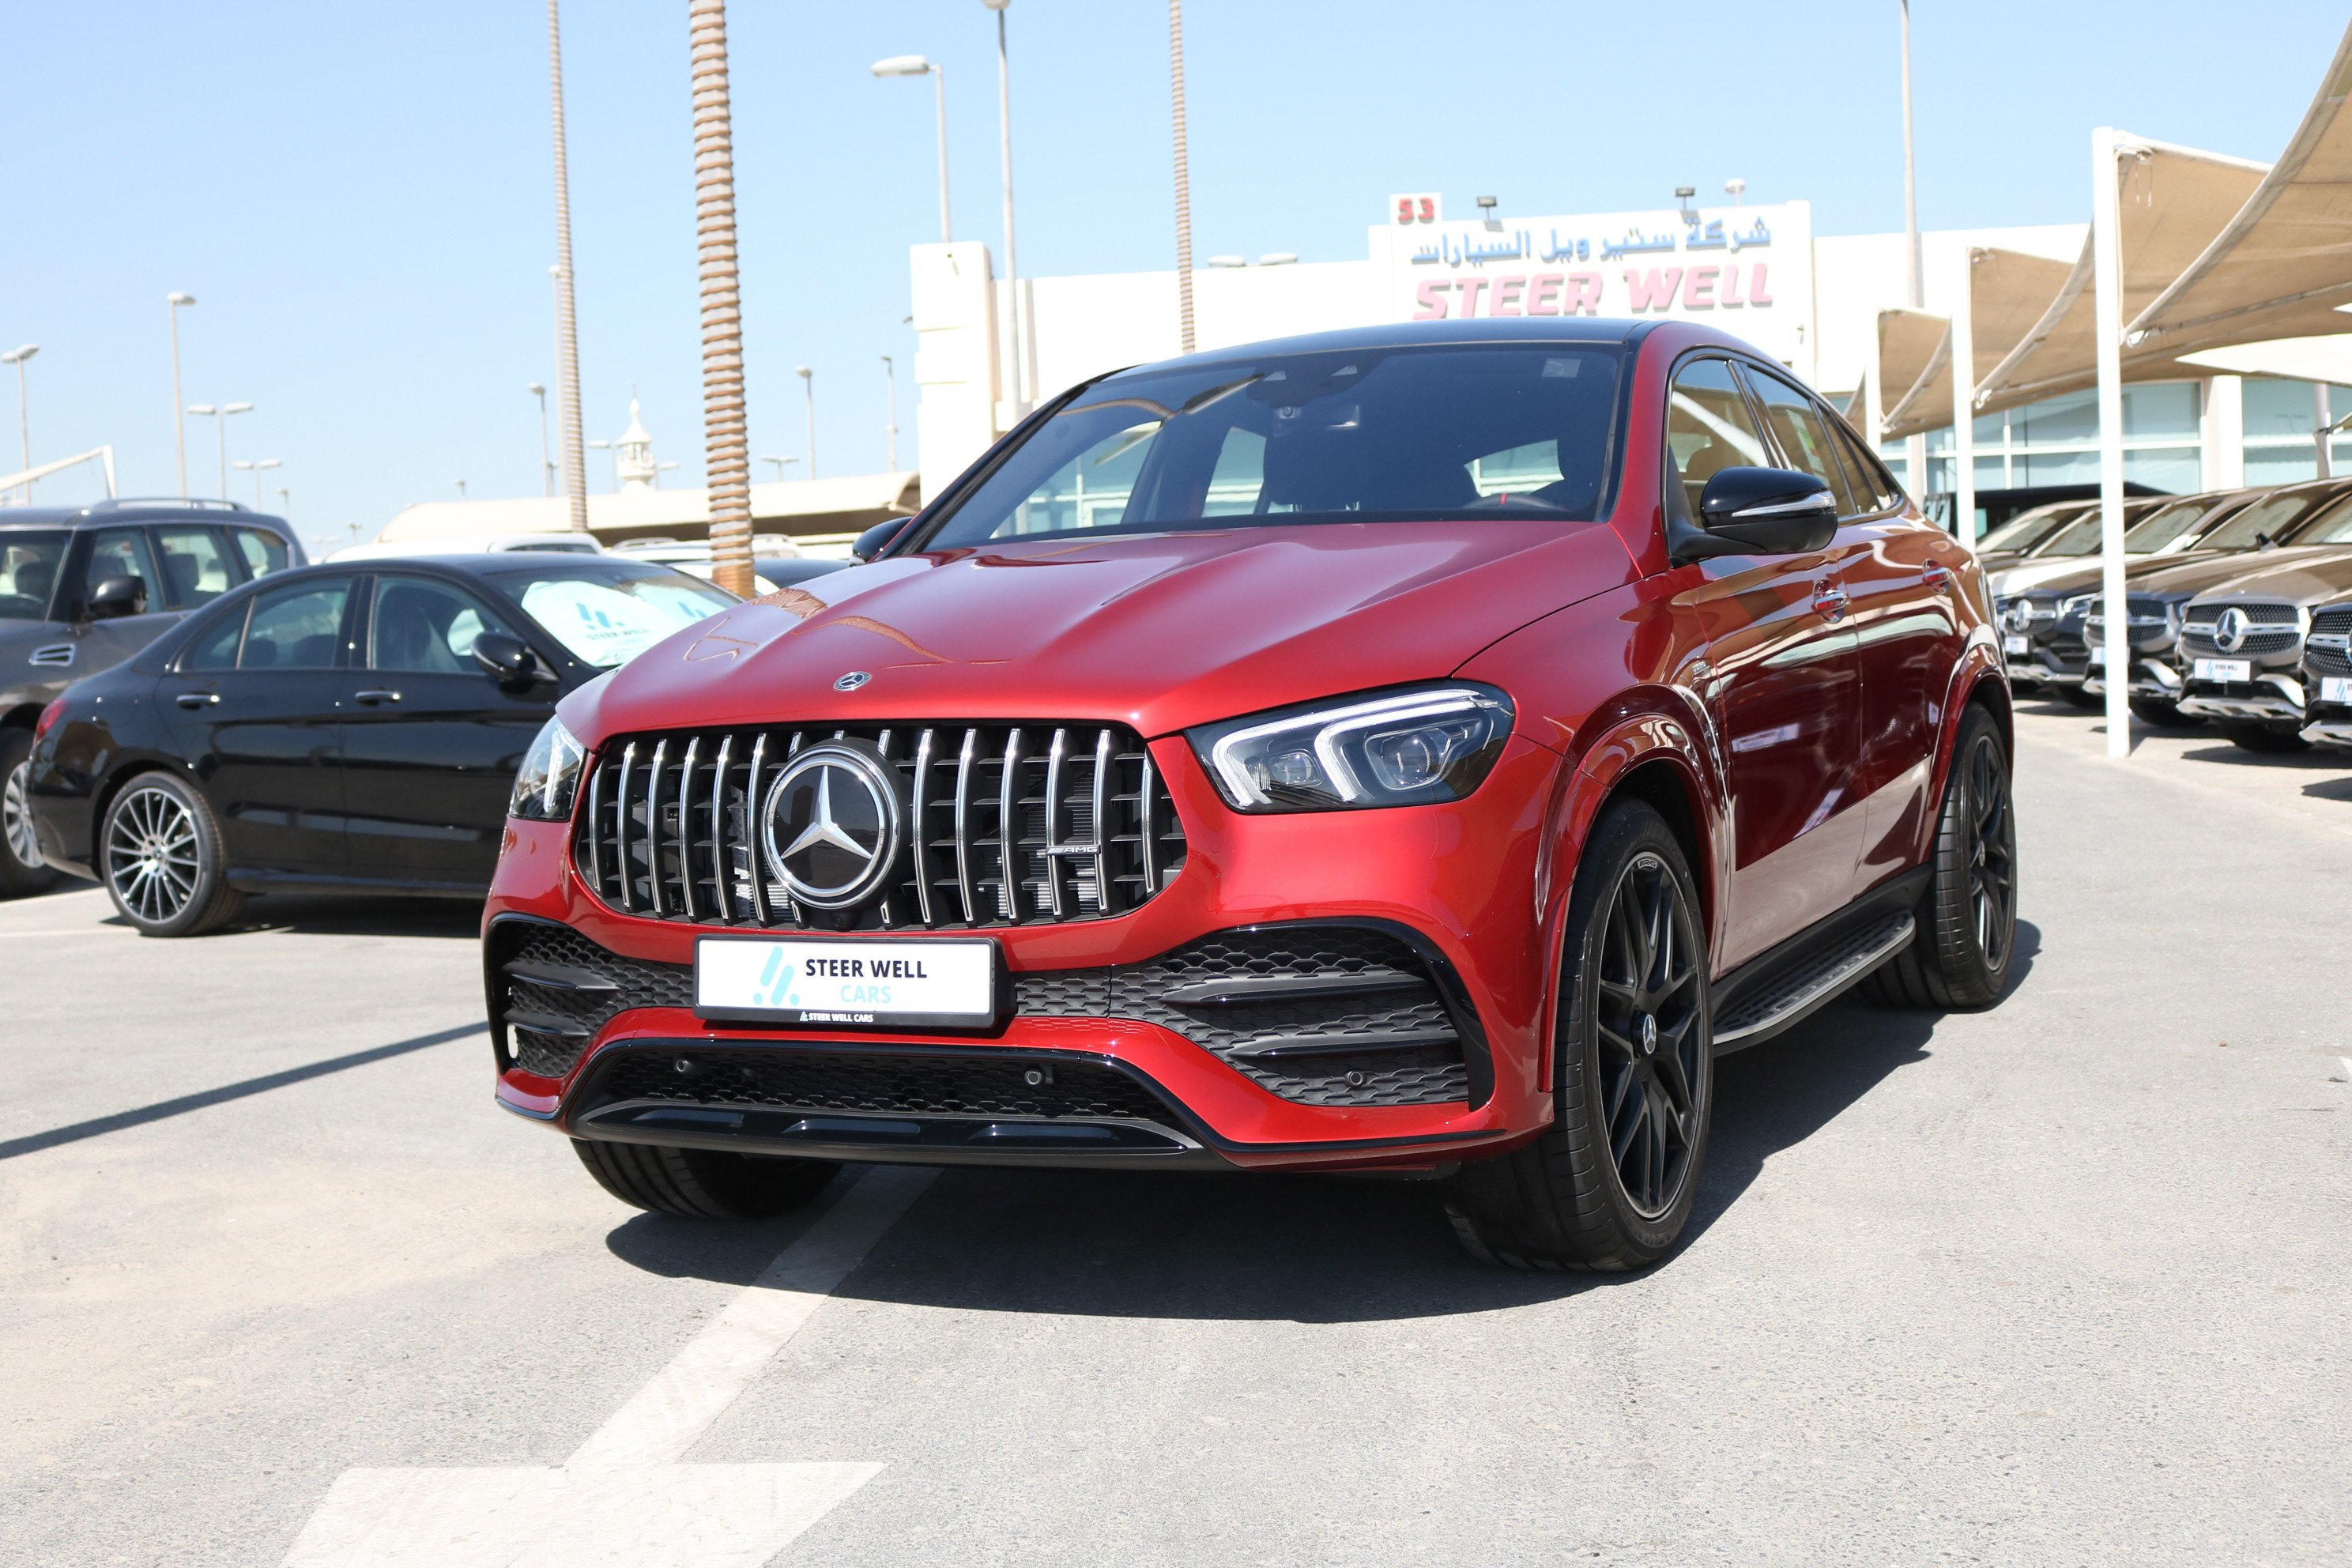 Mercedes-Benz AMG GLE 53 Coupe Turbo 4matic+